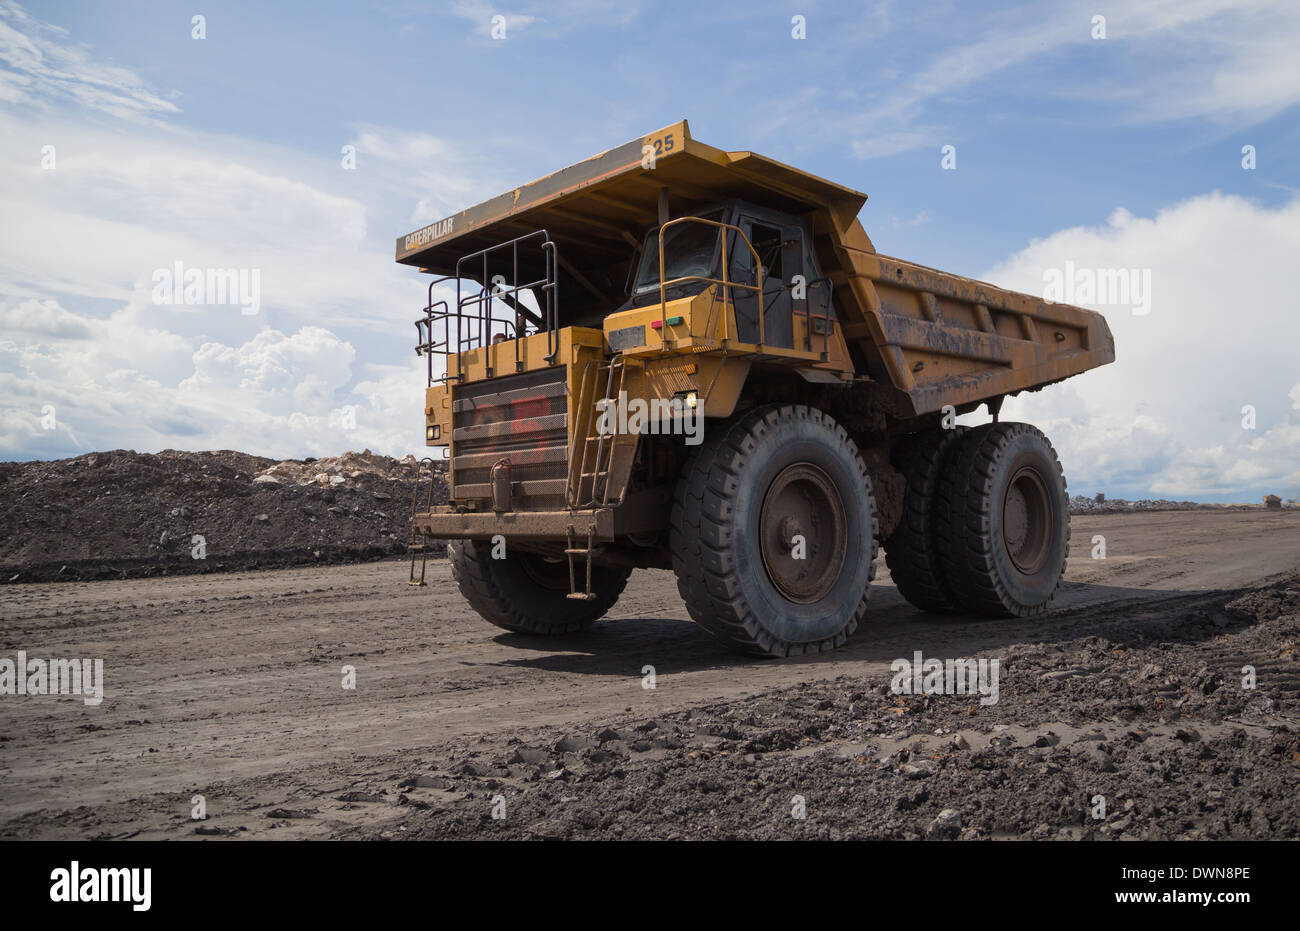 A caterpillar mining truck returns from dumping waste material on a stockpile in a large open cast copper mine. - Stock Image